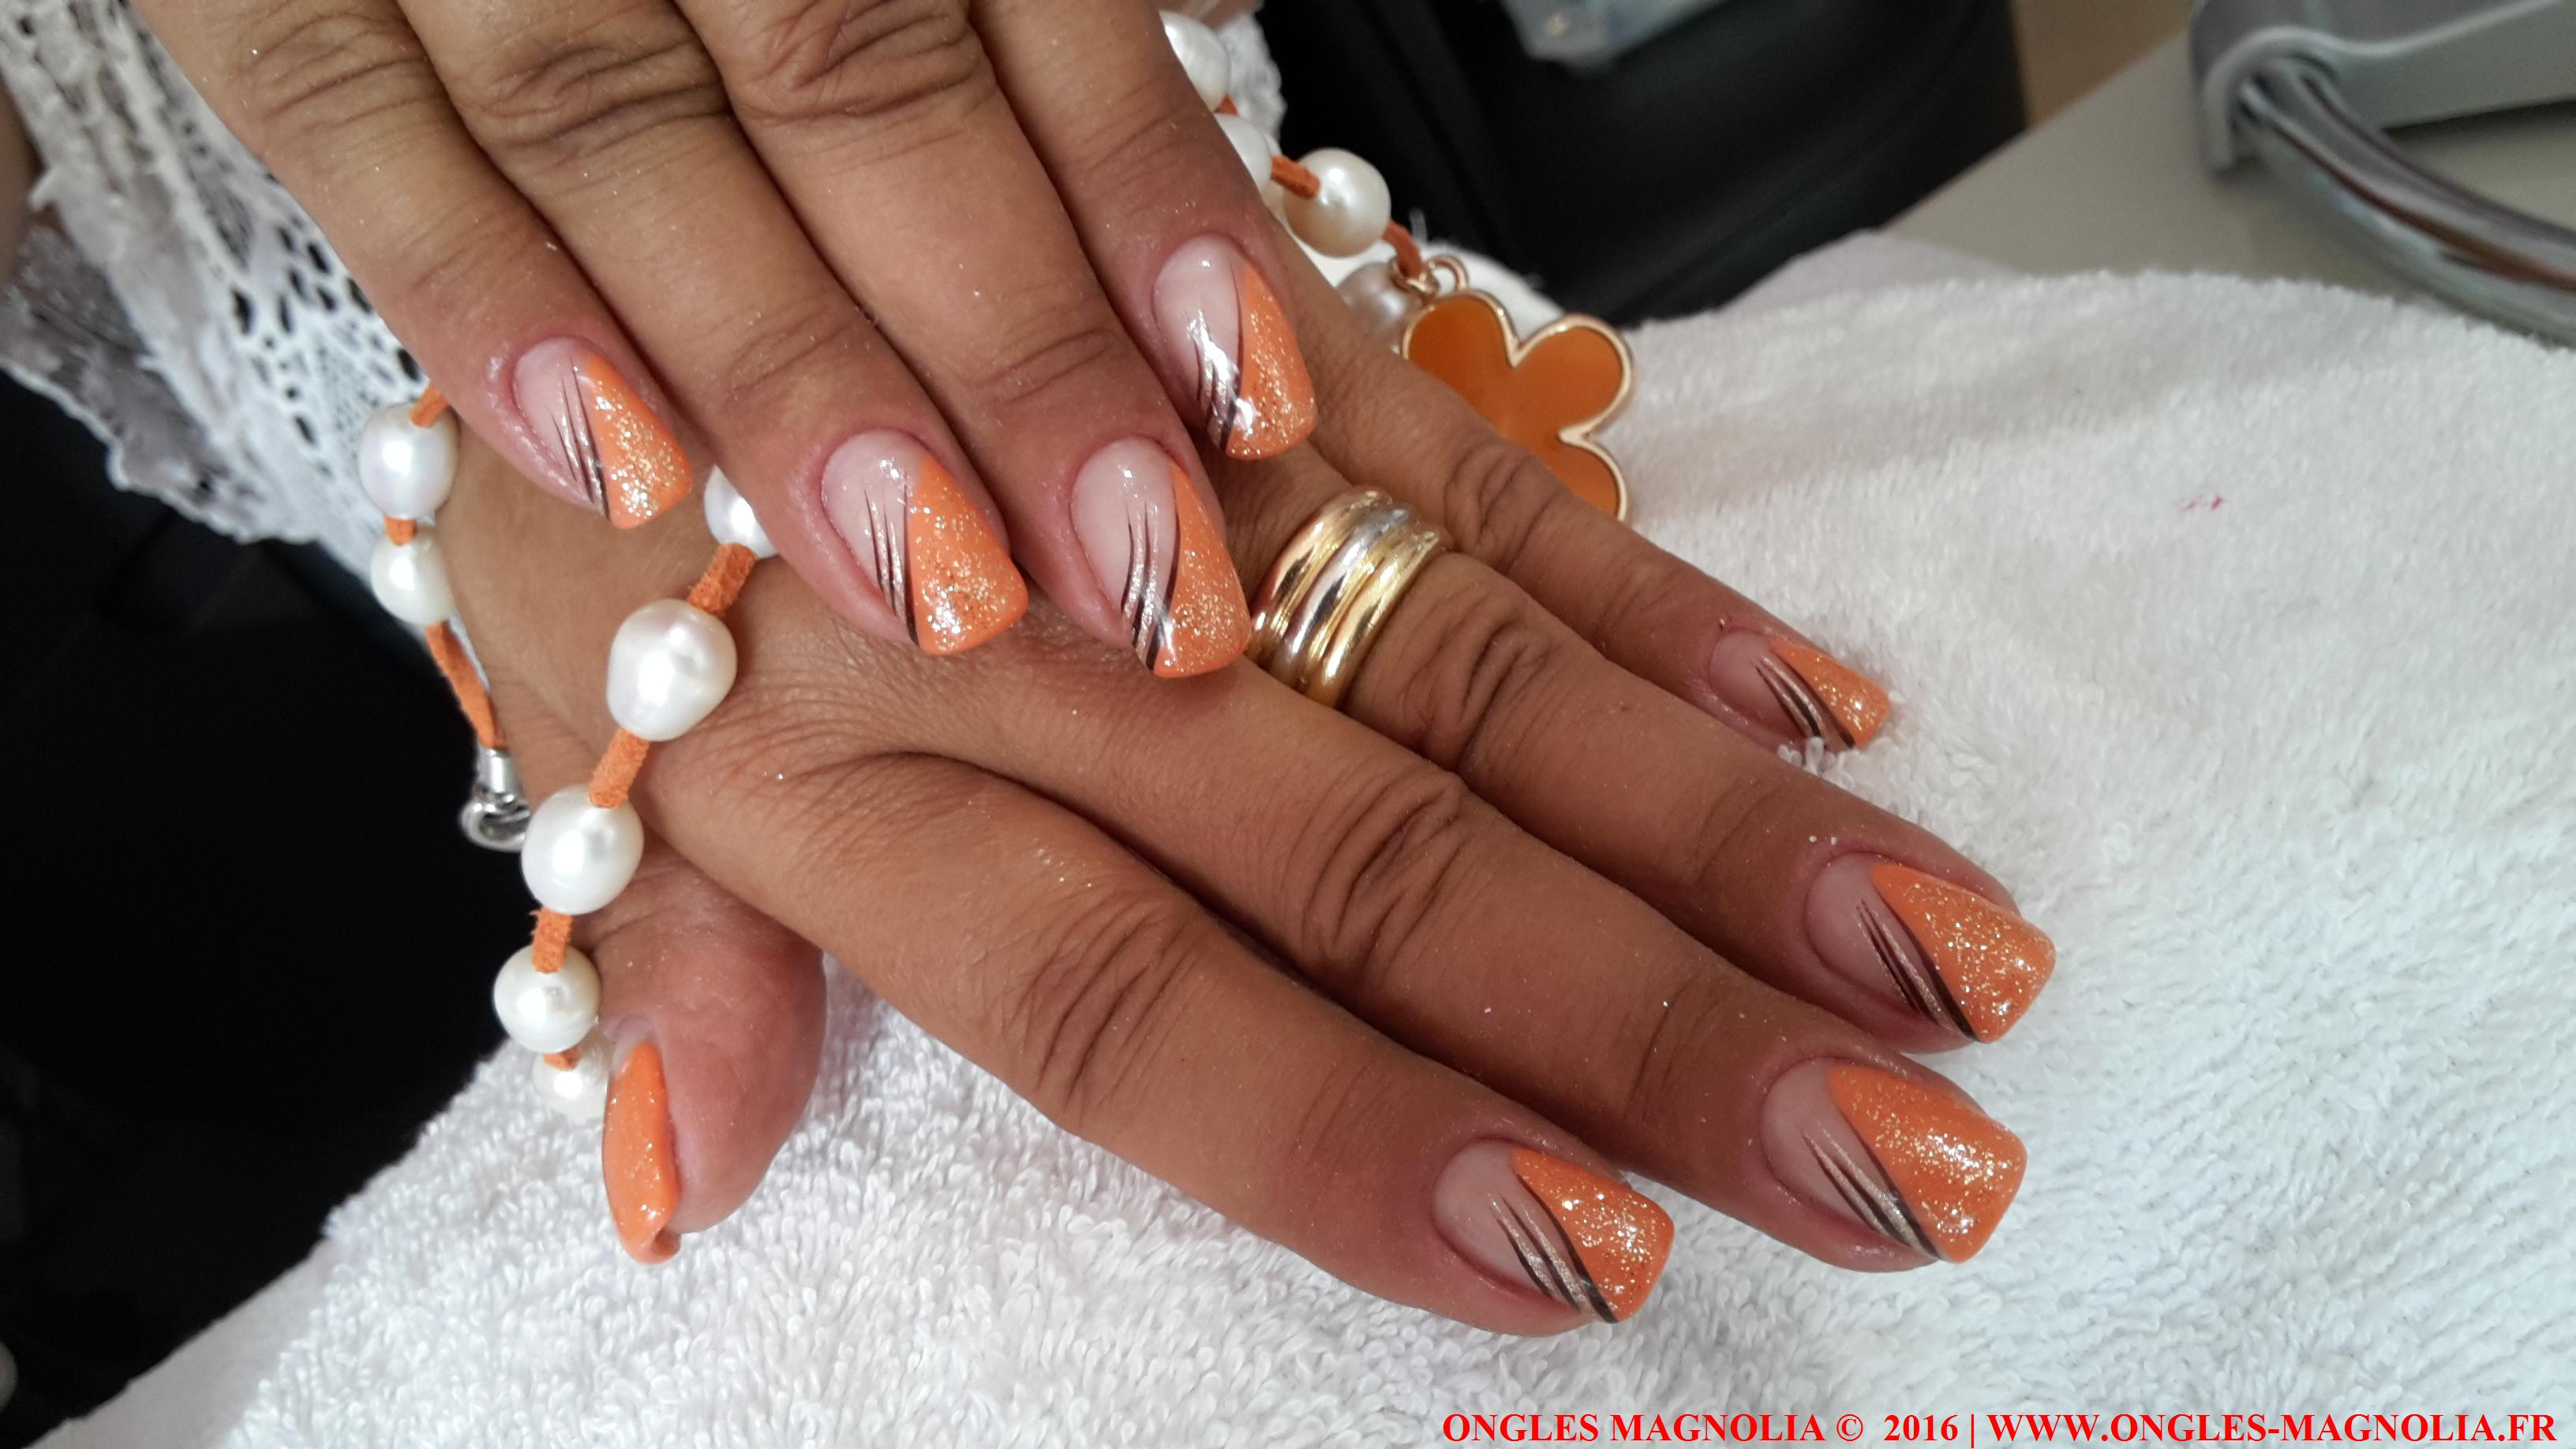 Pose-ongles-nail-art-neuville-sur-saone-lyon-ongles magnolia 062016